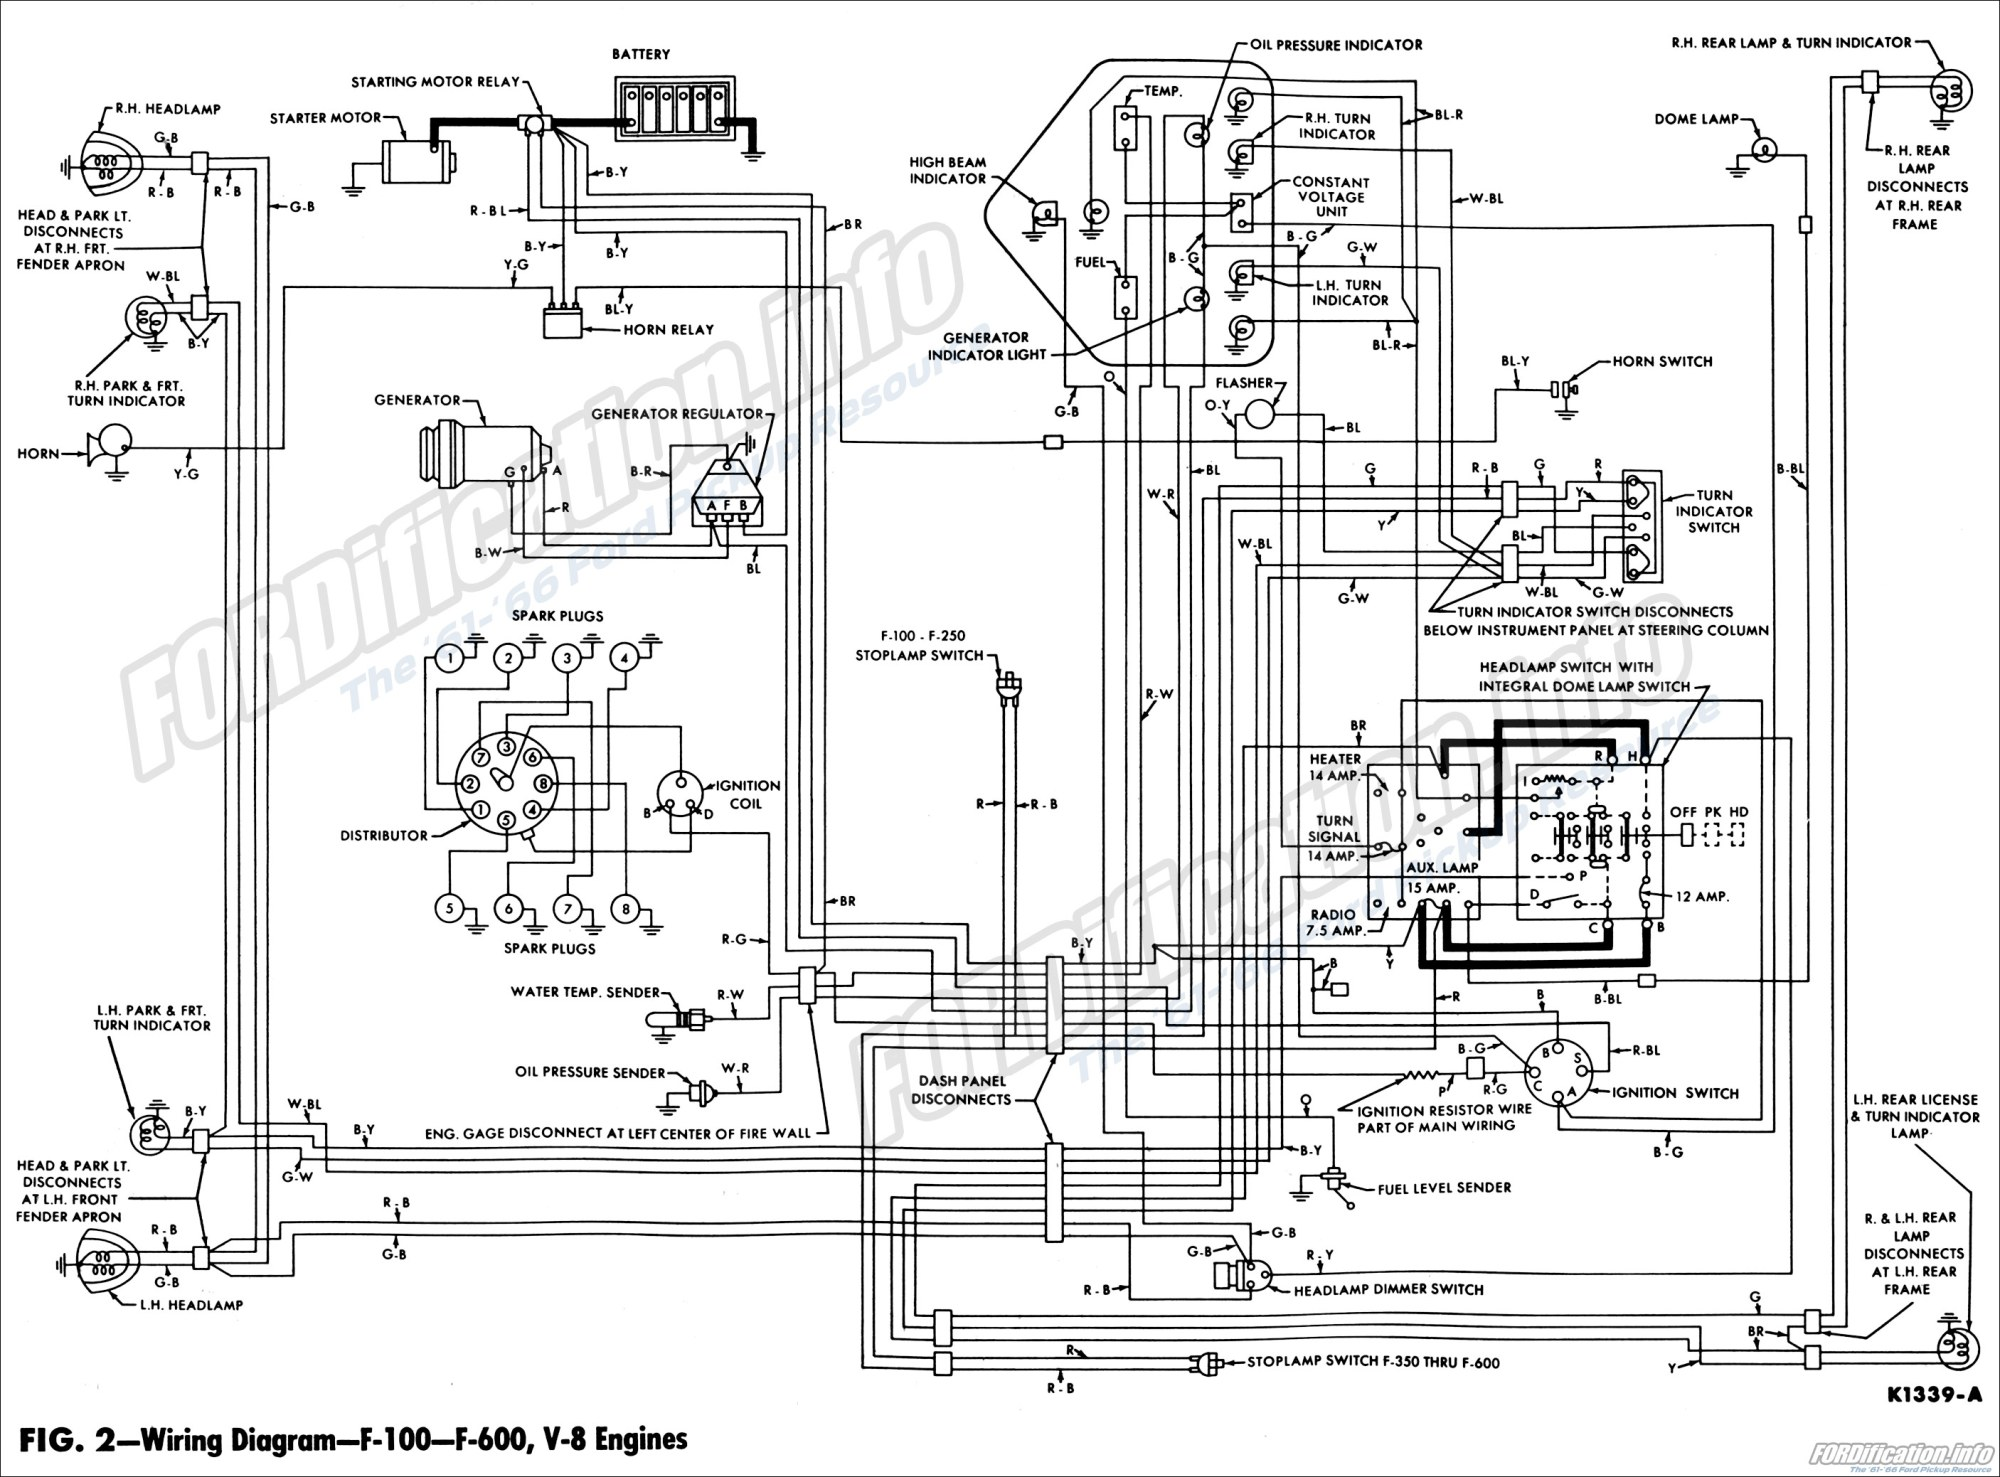 hight resolution of 1962 galaxie wiring diagram wiring diagram fascinating 1962 ford f100 wiring diagram wiring diagram expert 1962